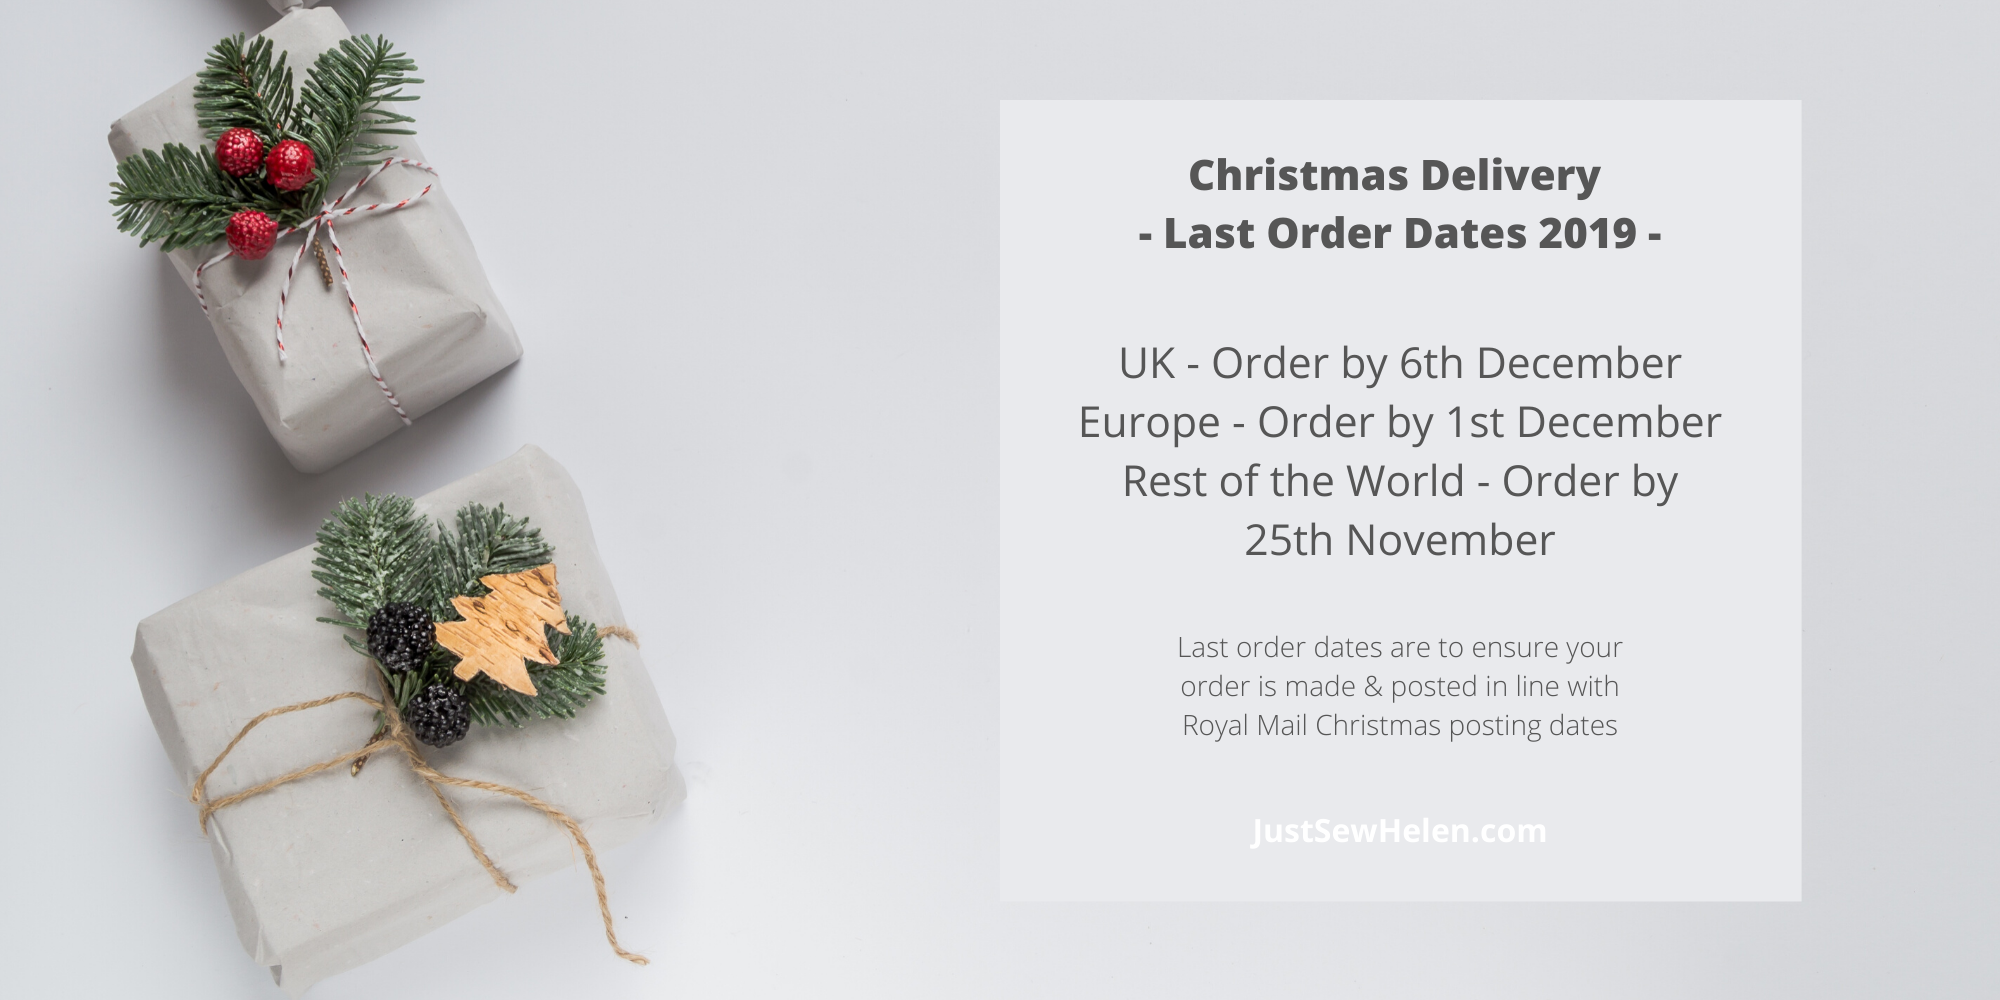 Christmas delivery and last order dates for JustSewHelen.com